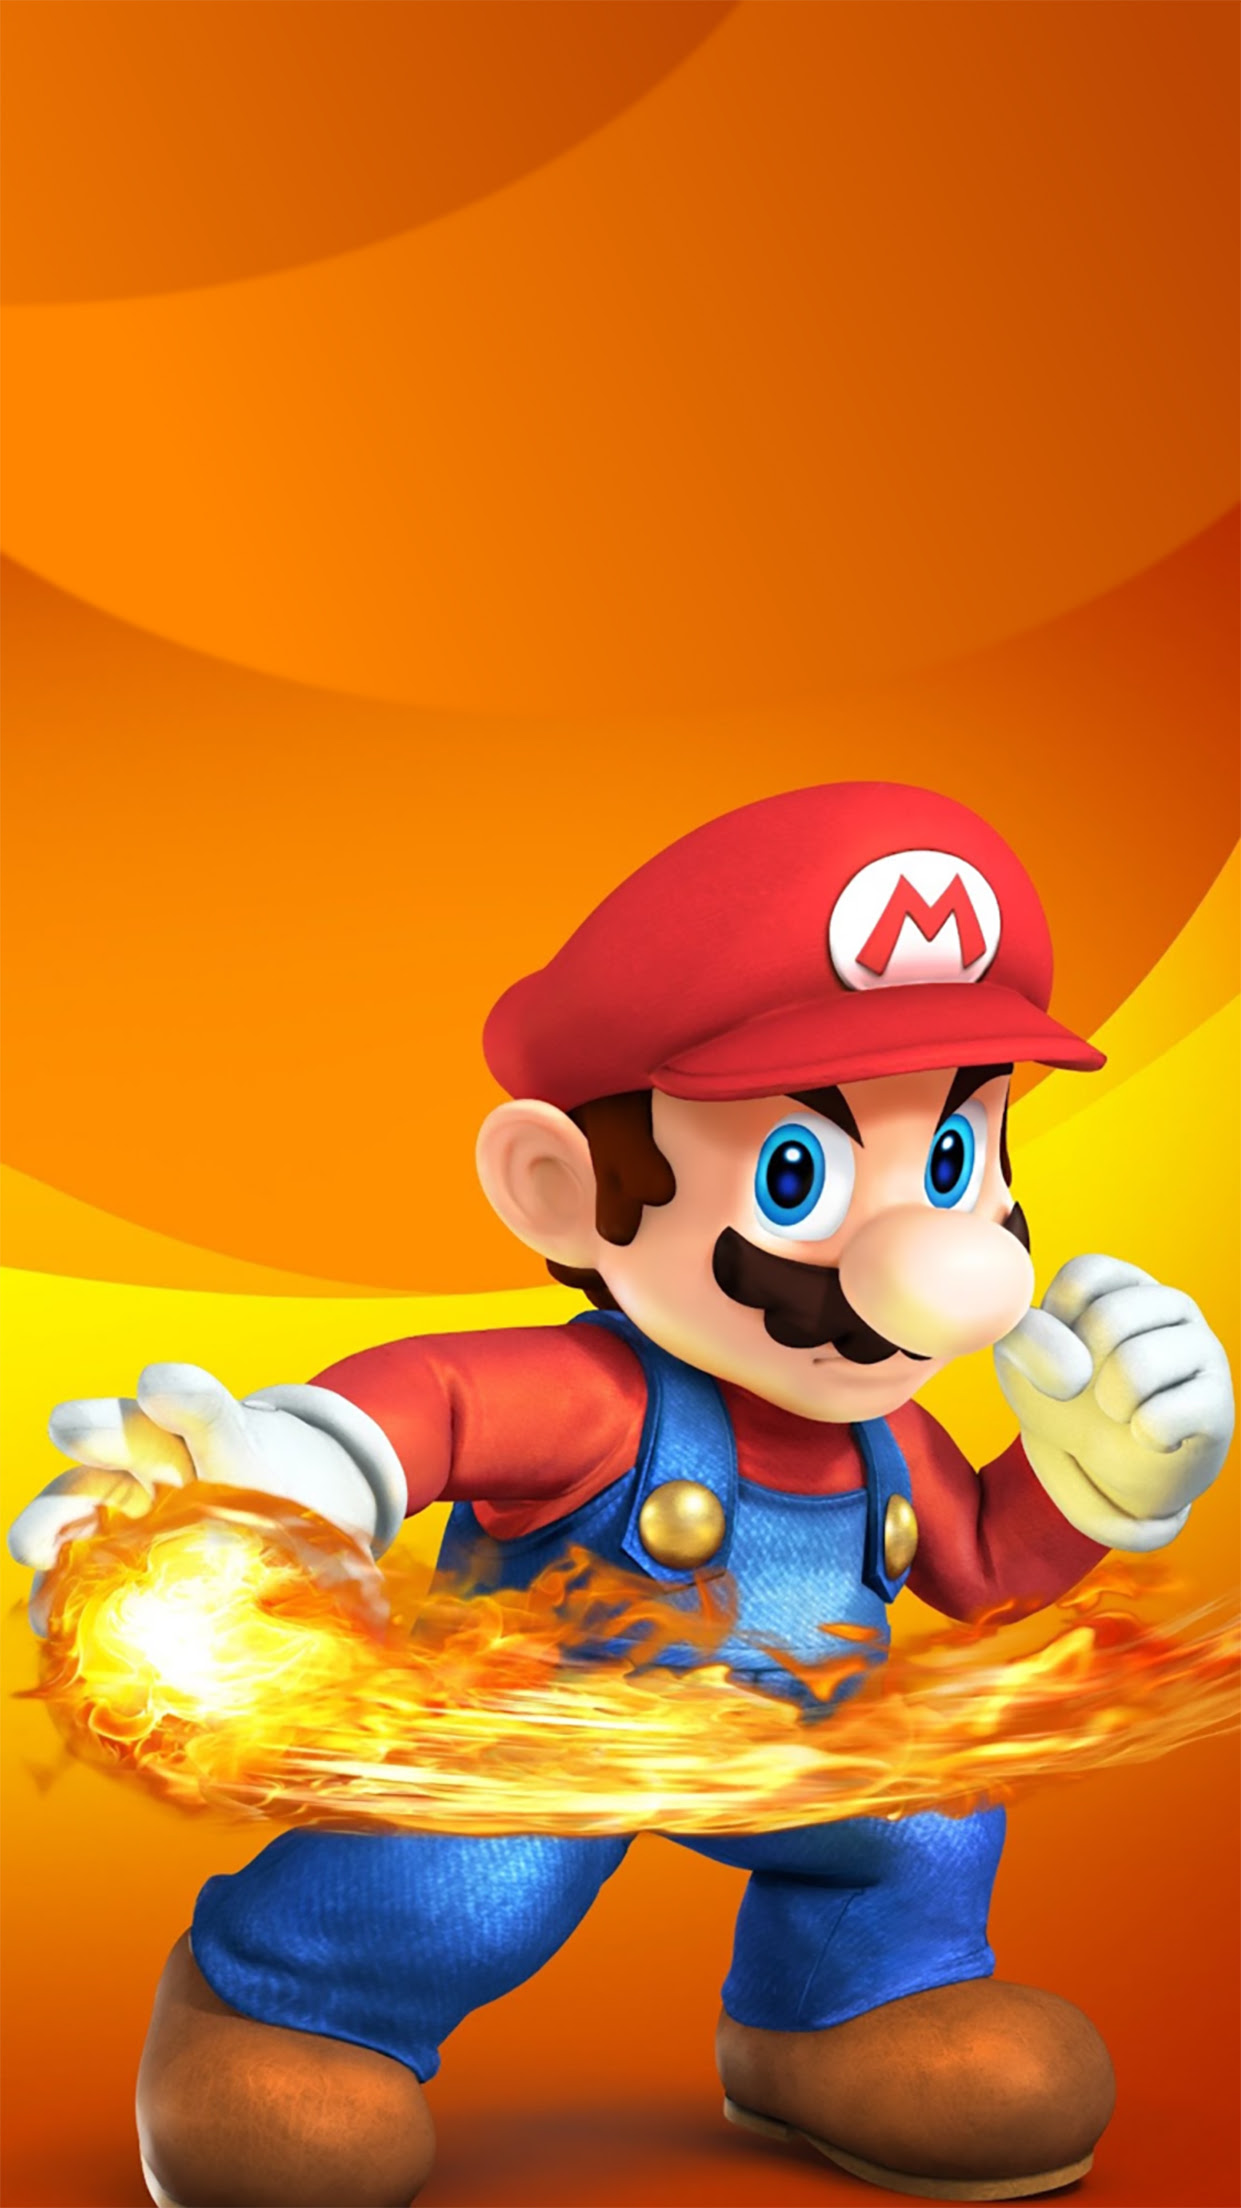 Super Mario Fire Wallpaper For Iphone X 8 7 6 Free Download